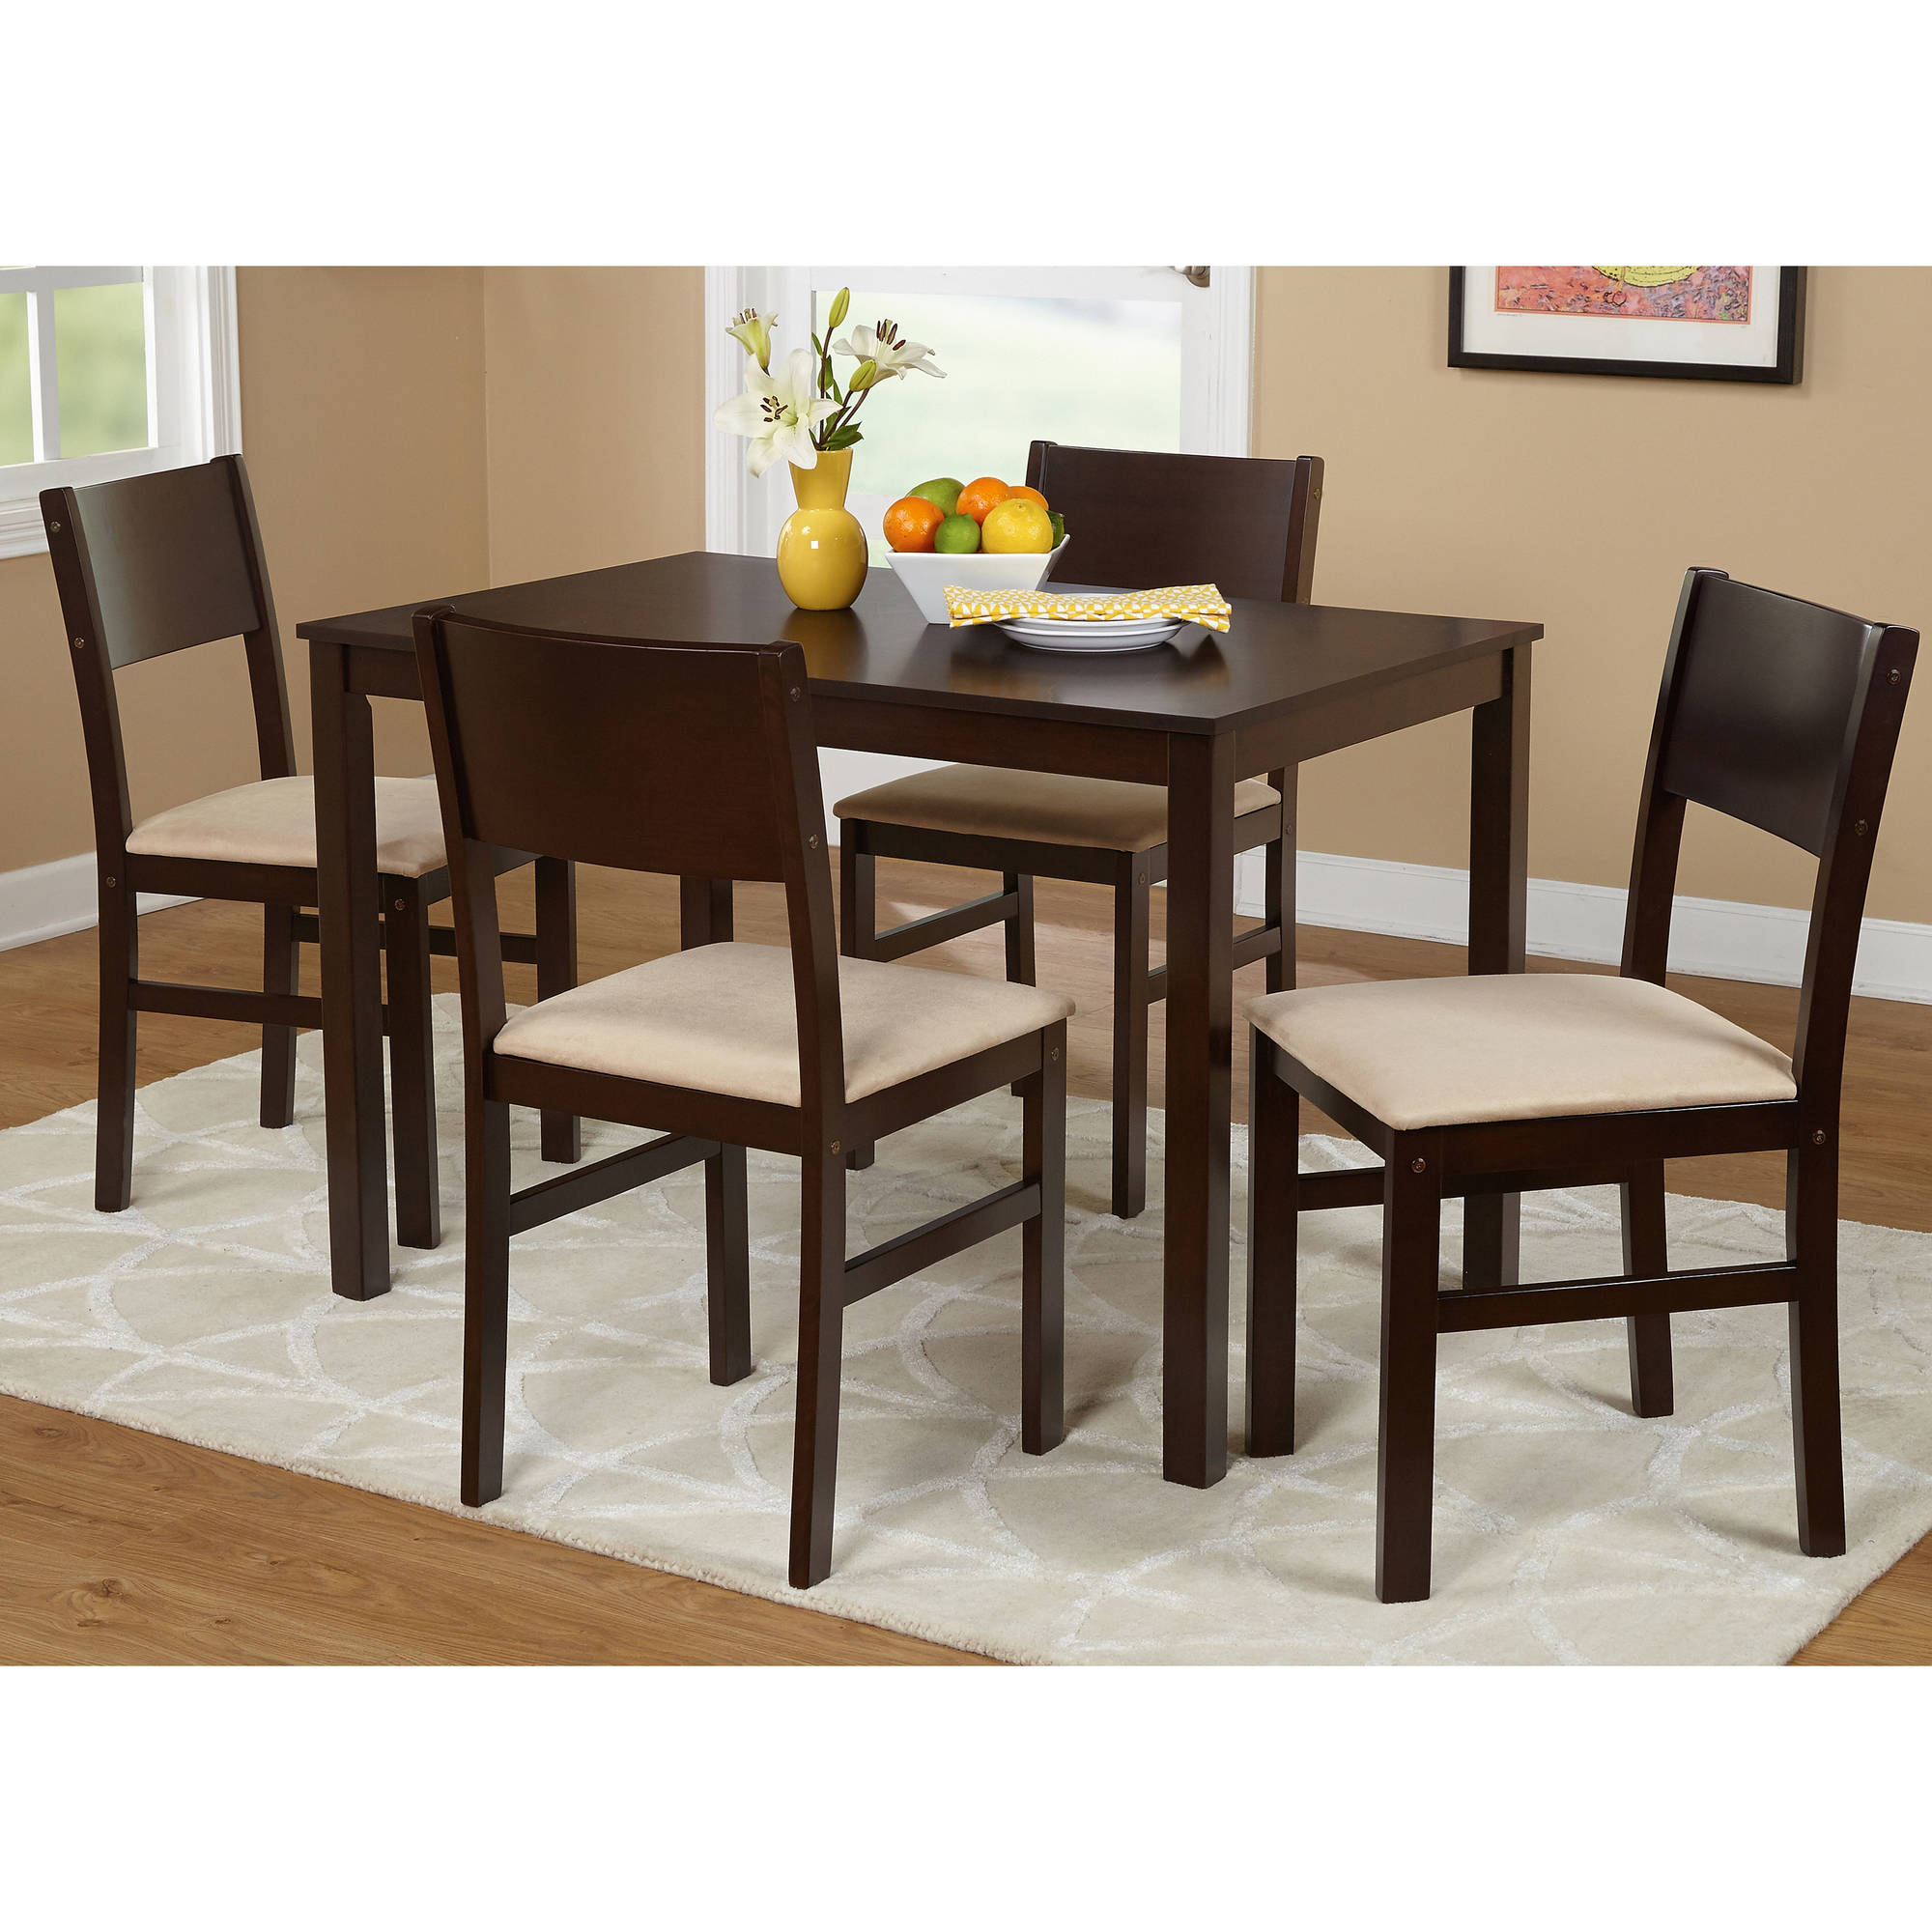 Well Liked Tms Lucca 5 Piece Dining Set, Multiple Colors For 5 Piece Dining Sets (View 4 of 20)